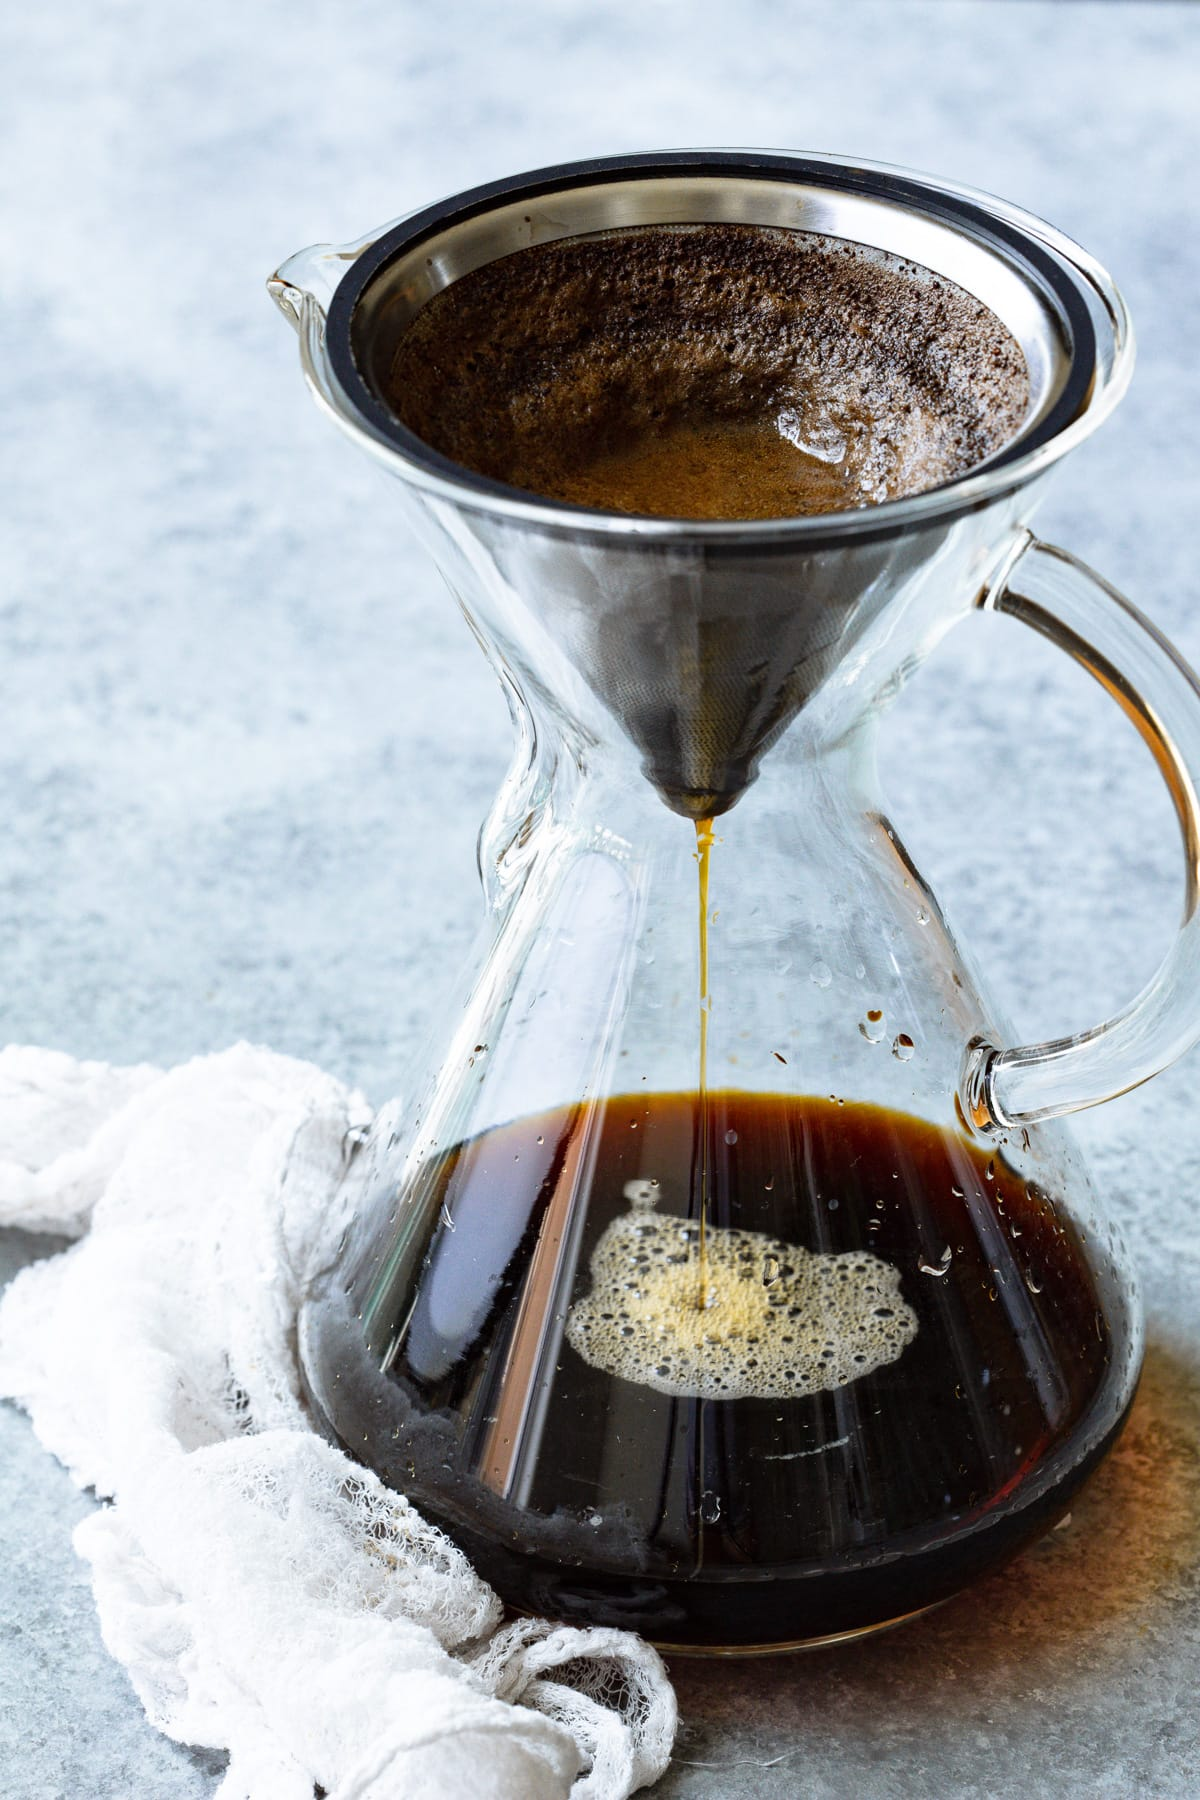 Cold brew being filtered through a pour over.